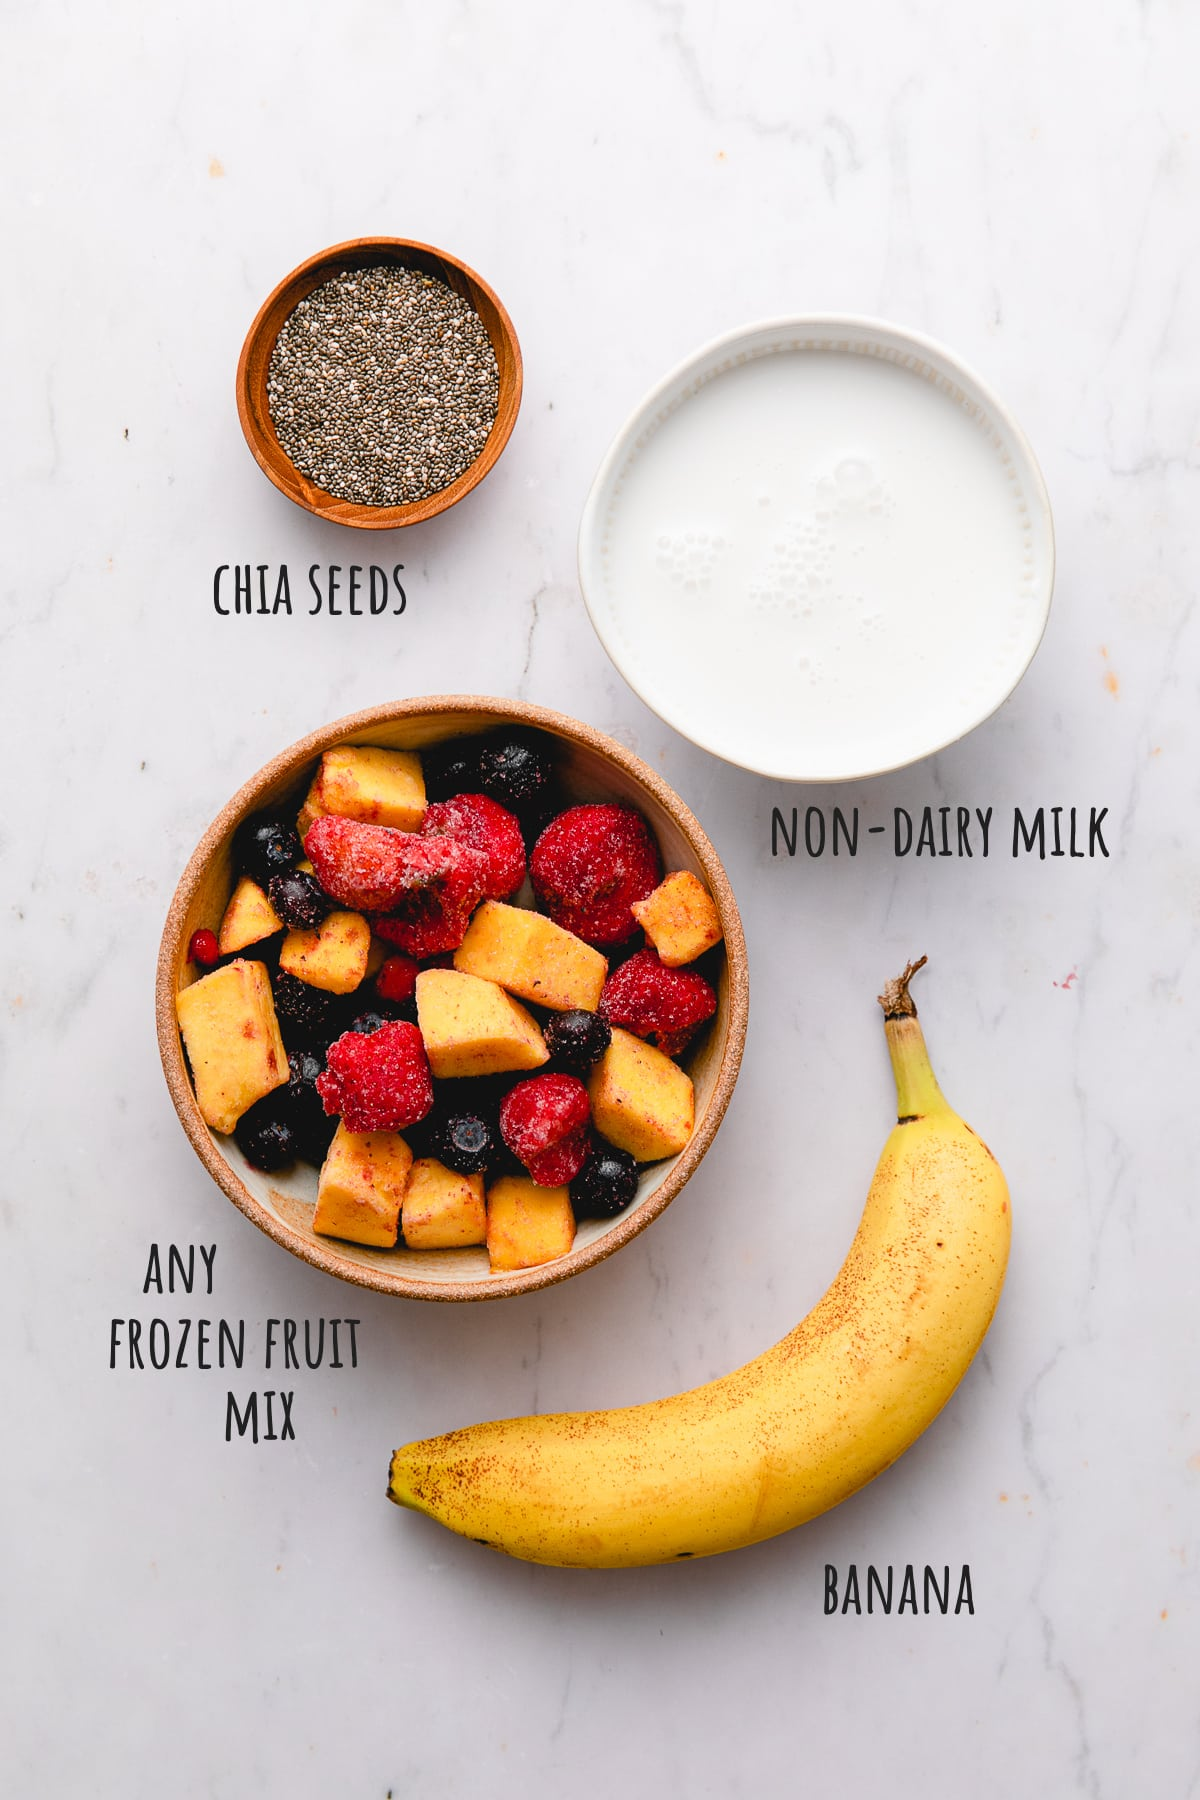 top down view of ingredients used to make chia seed smoothie with banana.